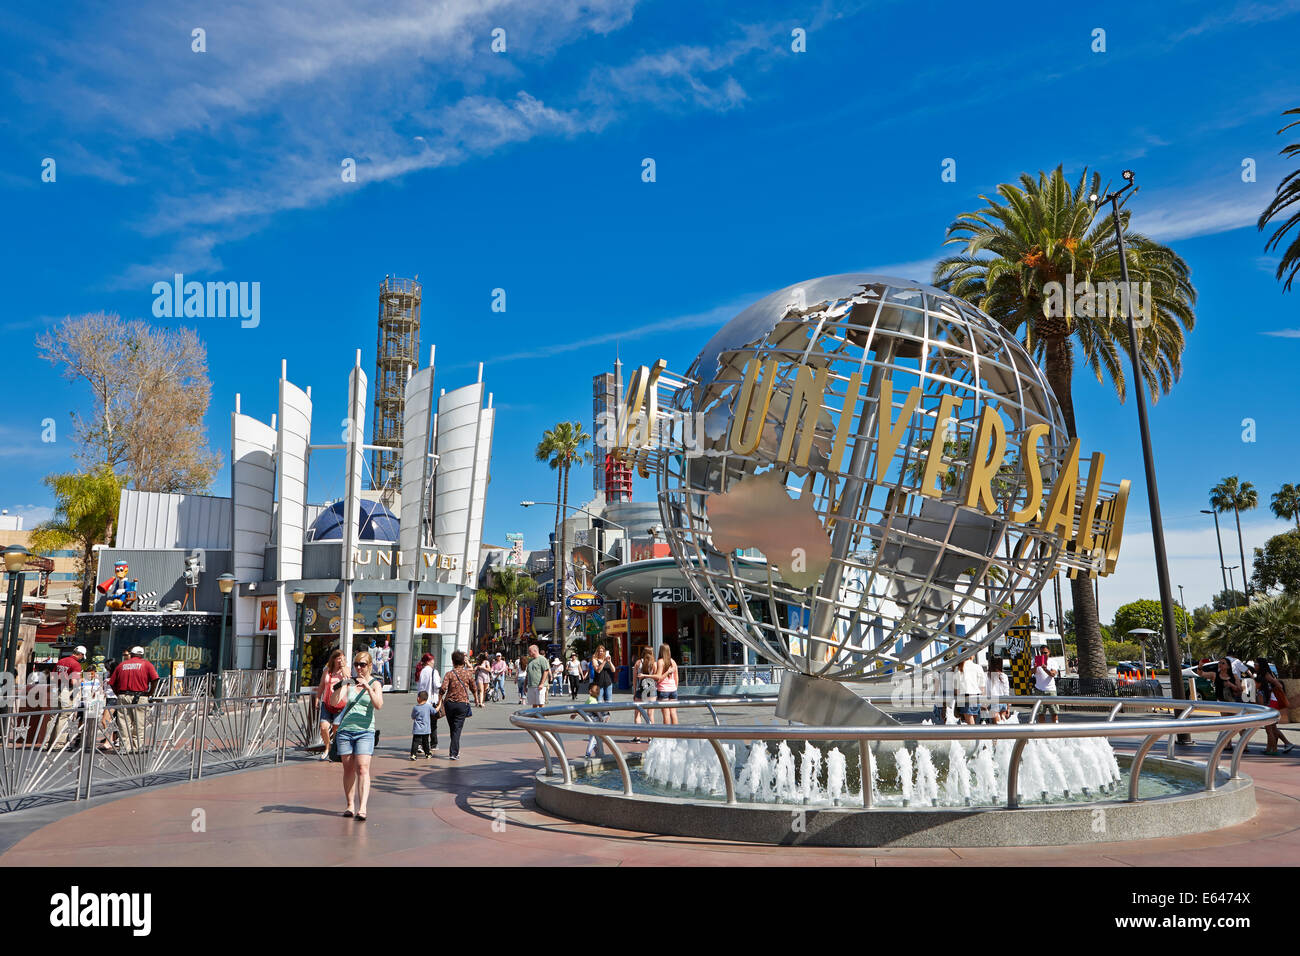 Universal Studios Globe in front of the Universal amusement park in Universal City. Los Angeles, California, USA. - Stock Image